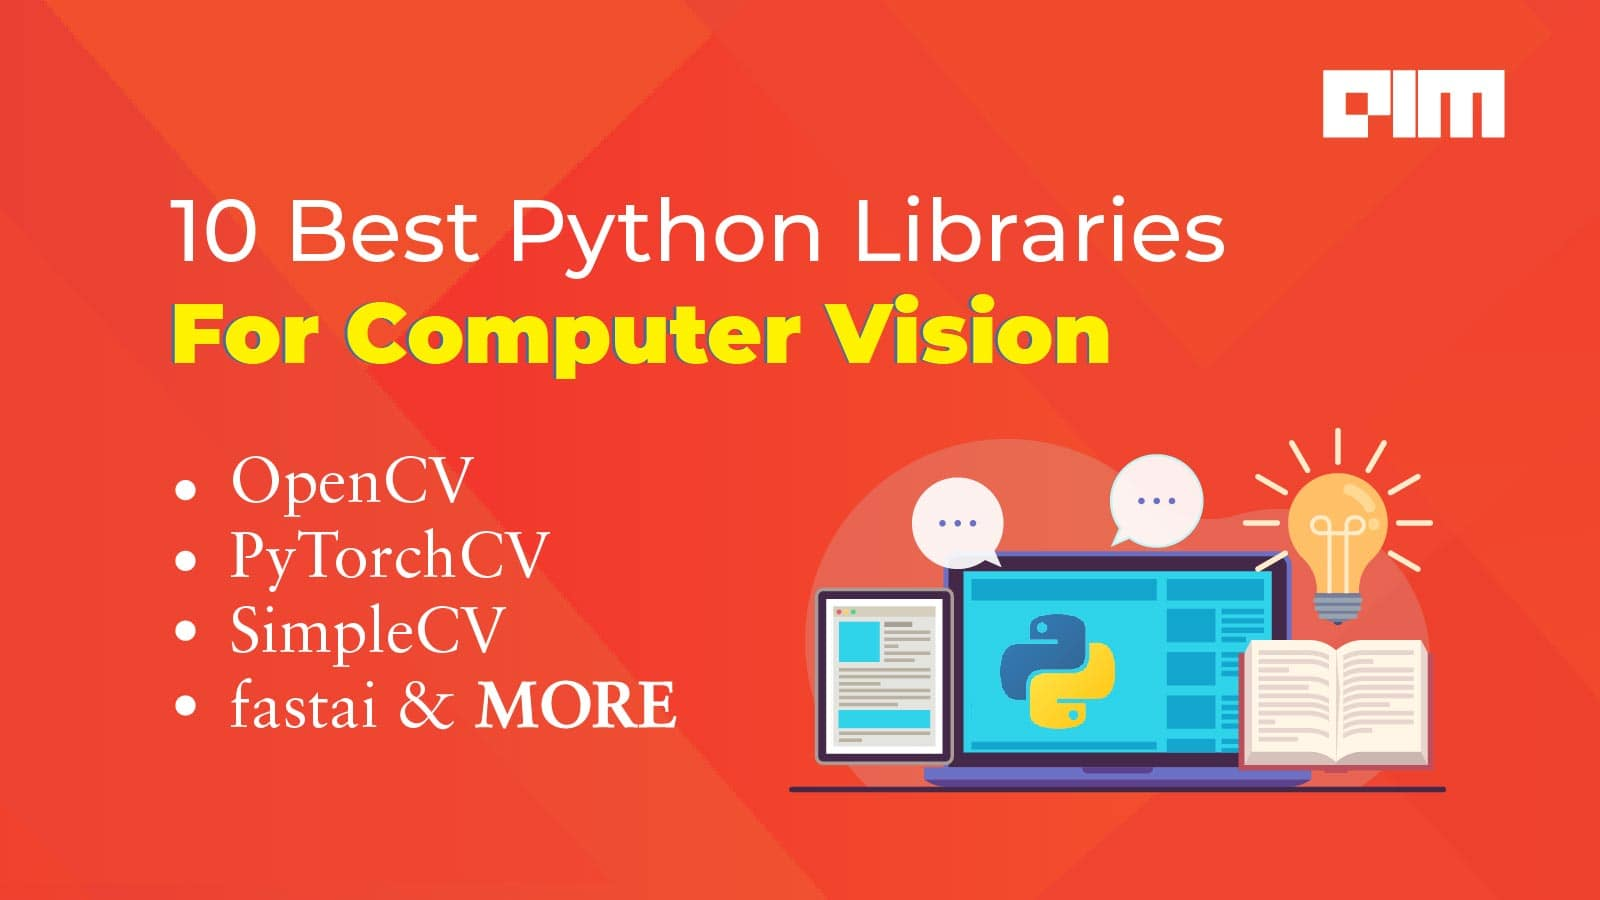 10 Best Python Libraries For Computer Vision Tasks